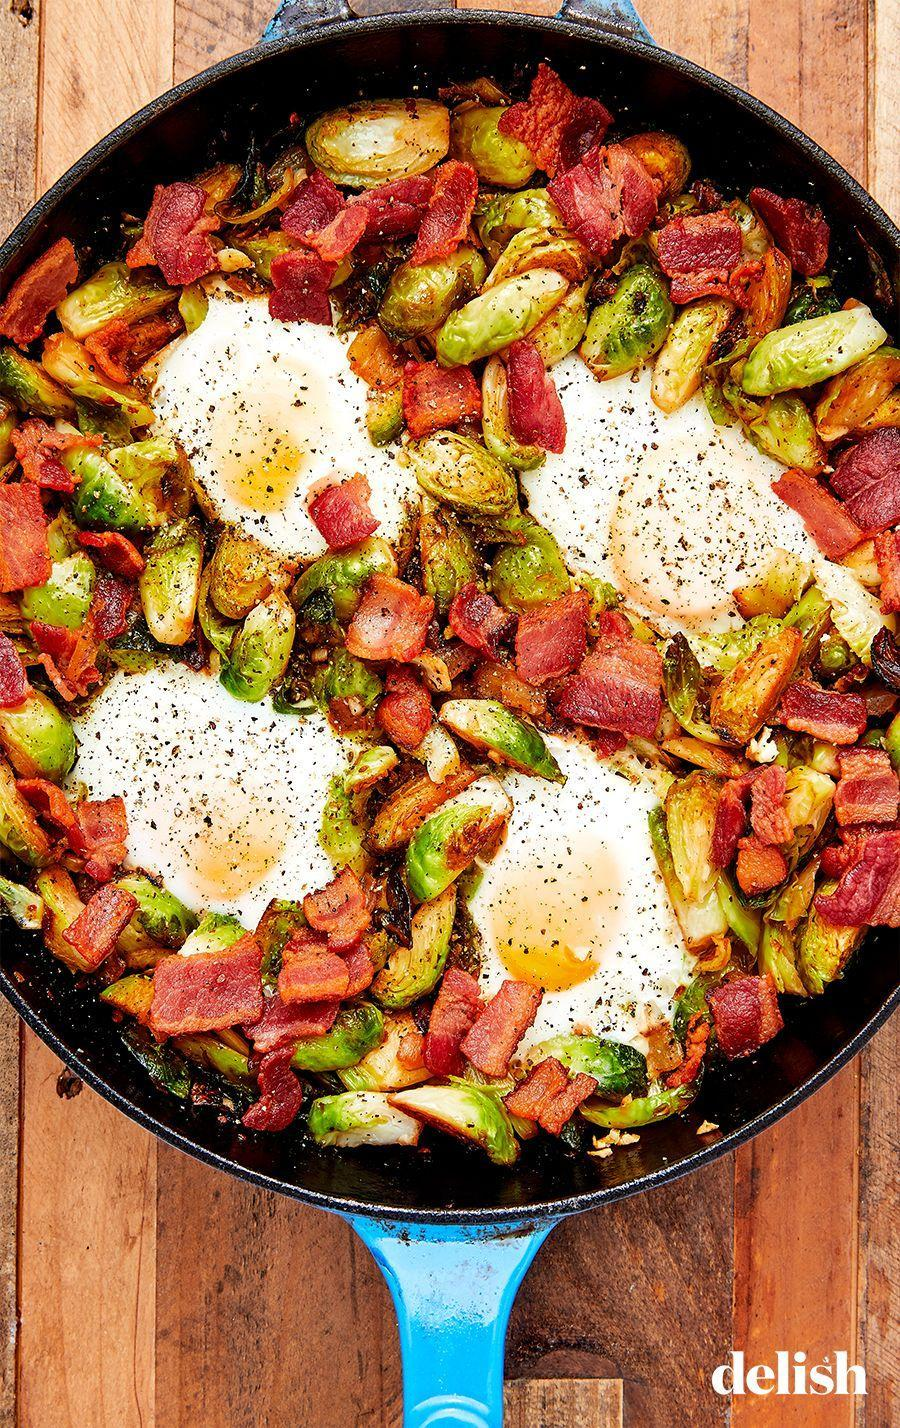 """<p>Give brussels sprouts the respect they deserve.</p><p>Get the recipe from <a href=""""https://www.delish.com/cooking/recipe-ideas/recipes/a58136/brussels-sprouts-hash-recipe/"""" rel=""""nofollow noopener"""" target=""""_blank"""" data-ylk=""""slk:Delish"""" class=""""link rapid-noclick-resp"""">Delish</a>. </p>"""